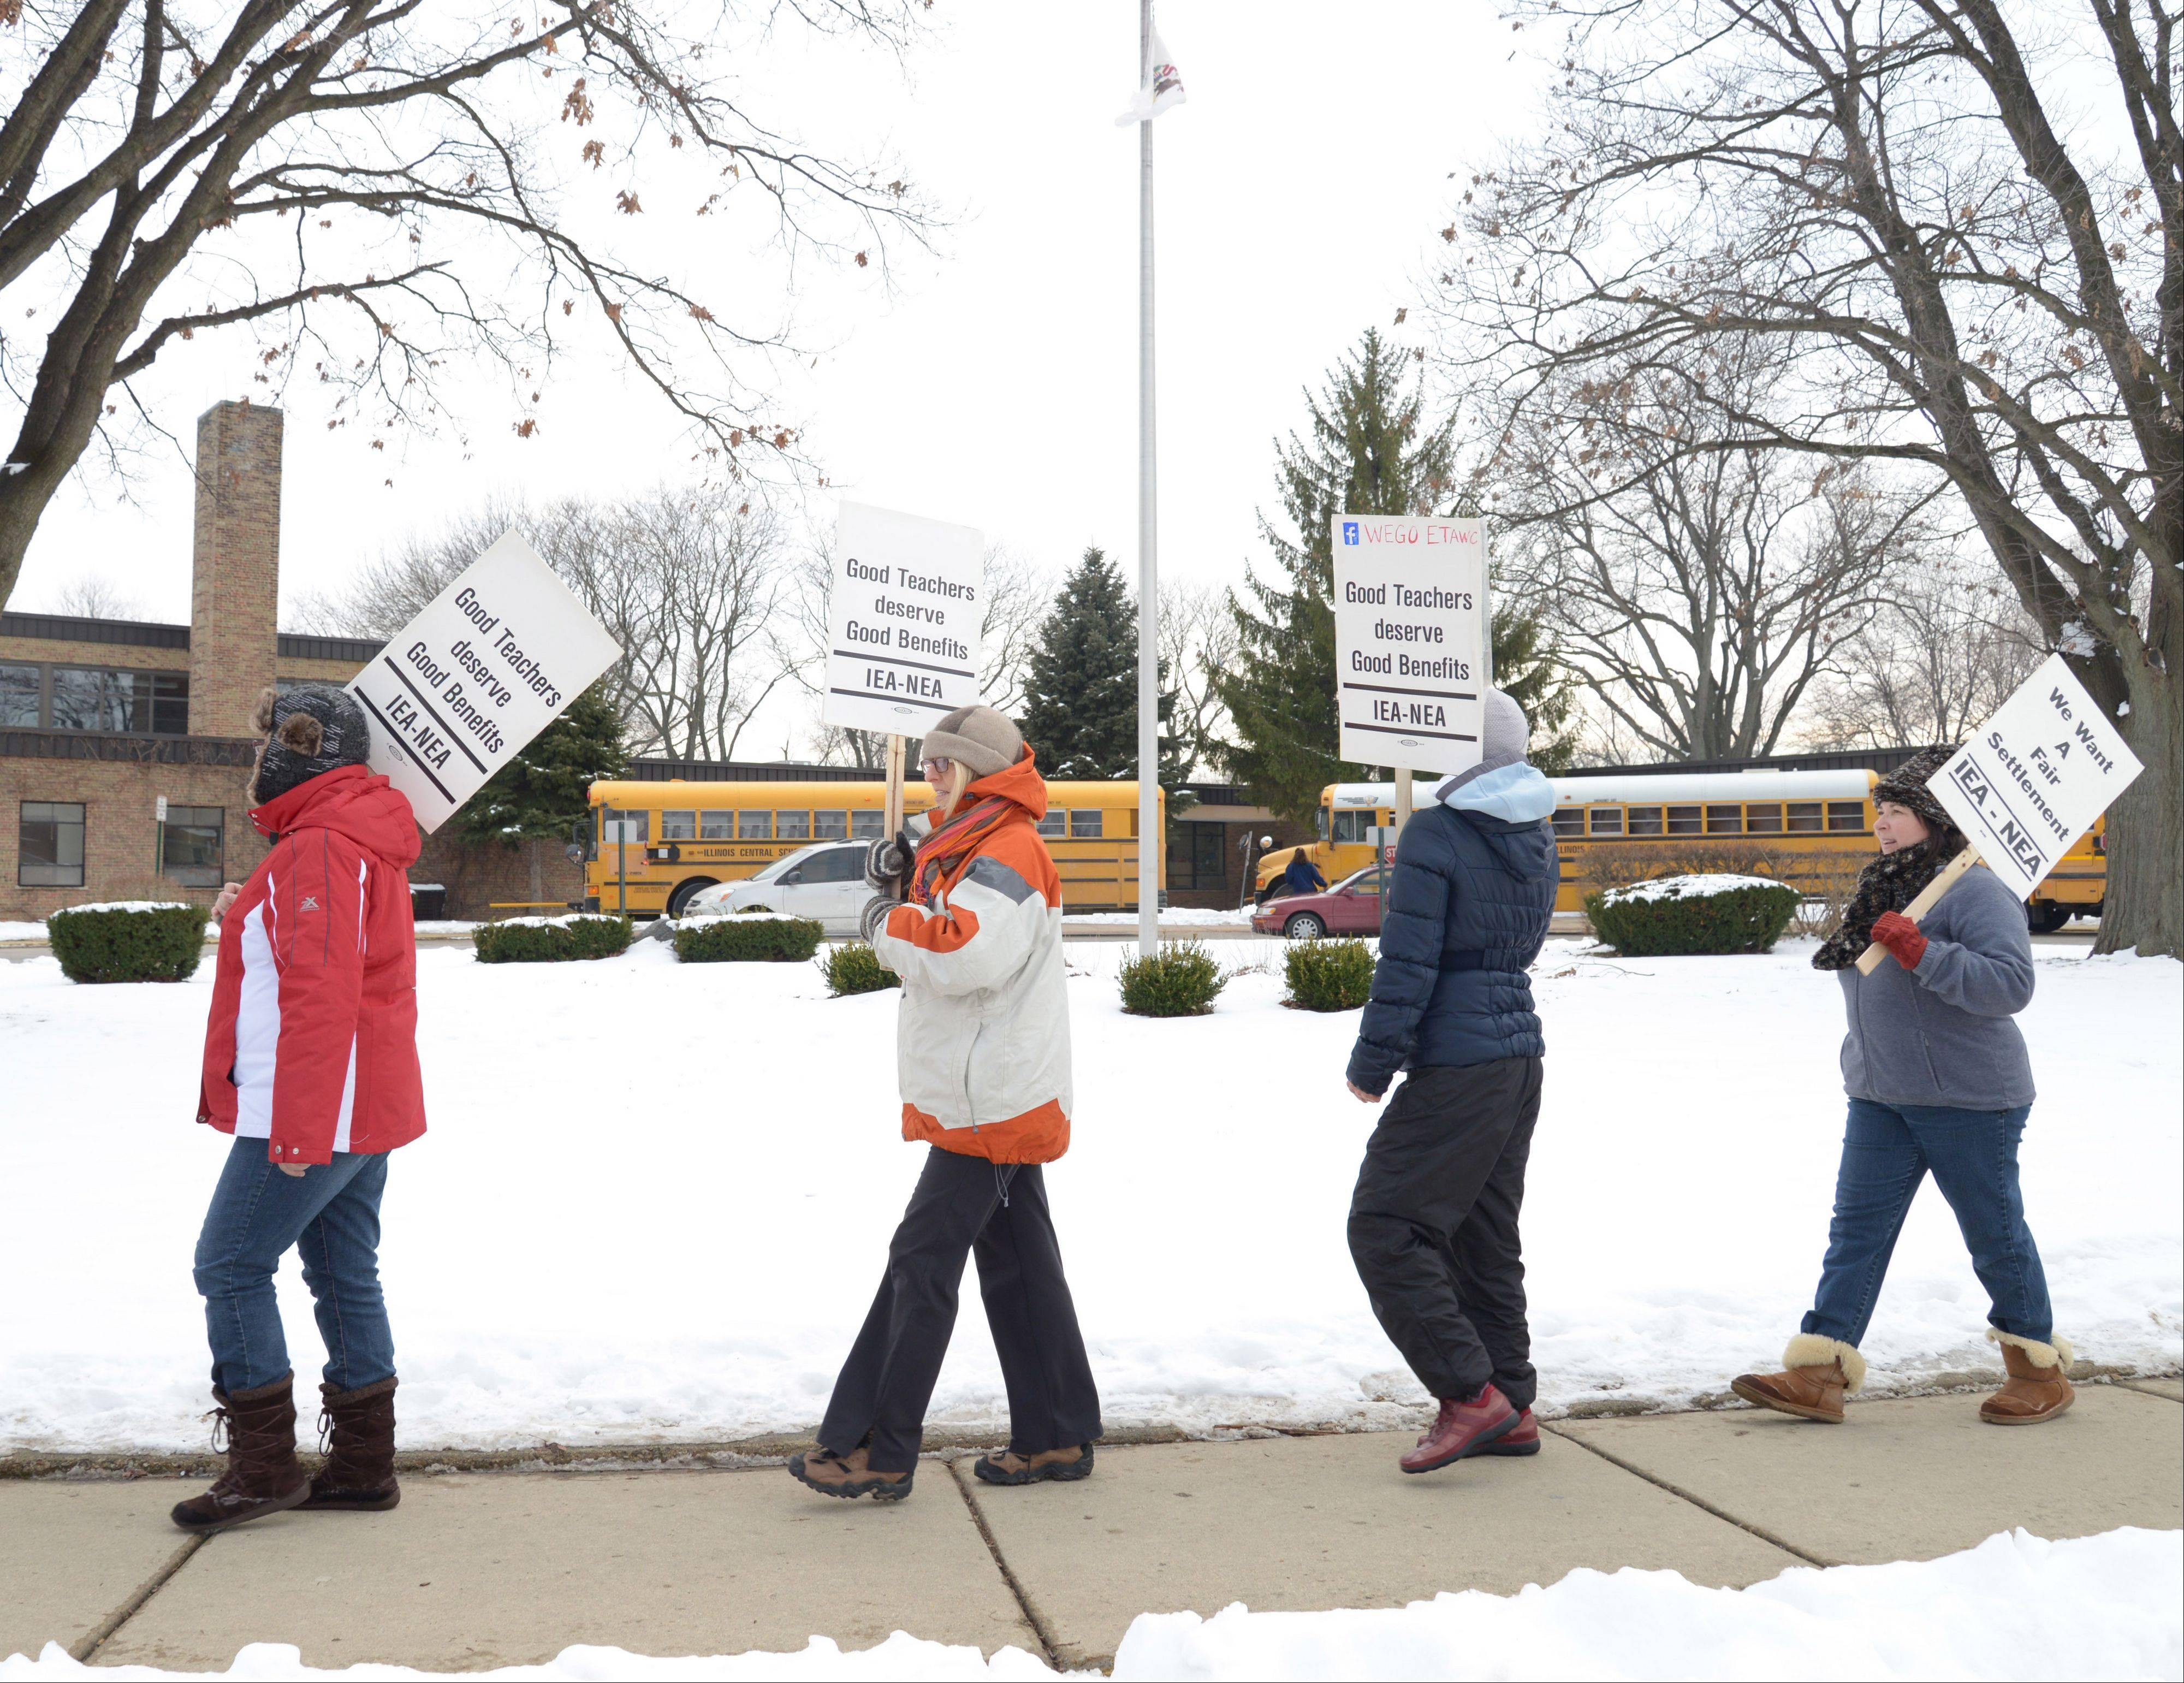 Parents 'happy it's over' as Dist. 33 classes resume